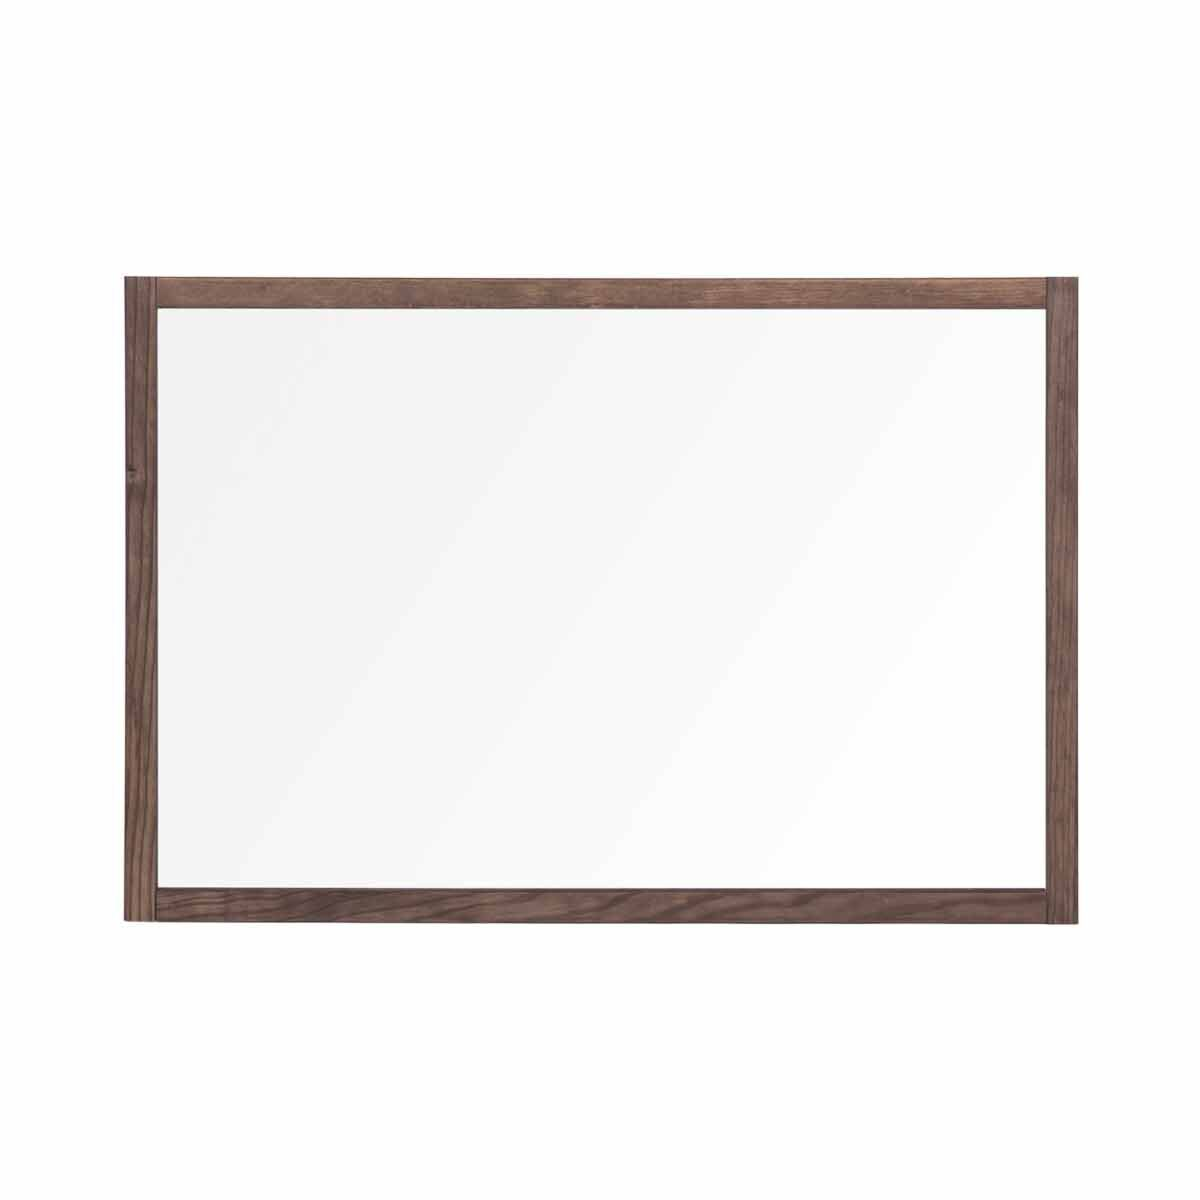 Bi-Office Protector Desktop Glass Board with Rustic Wood Frame and Clamps 104x70 cm